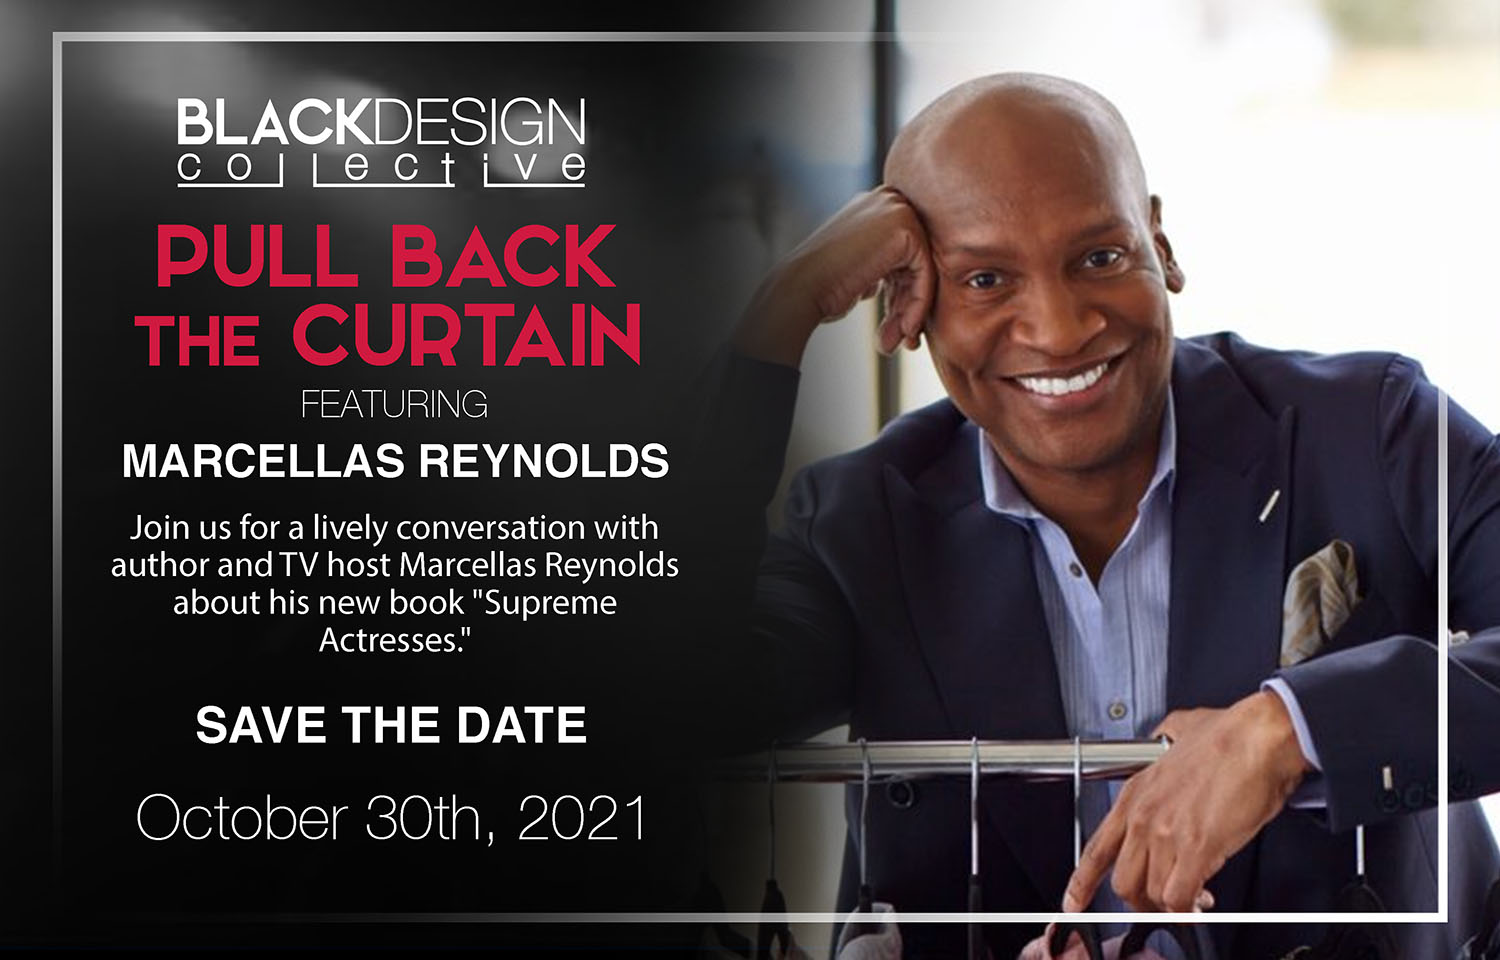 Black Design Collective Pull Back the Curtain 2021